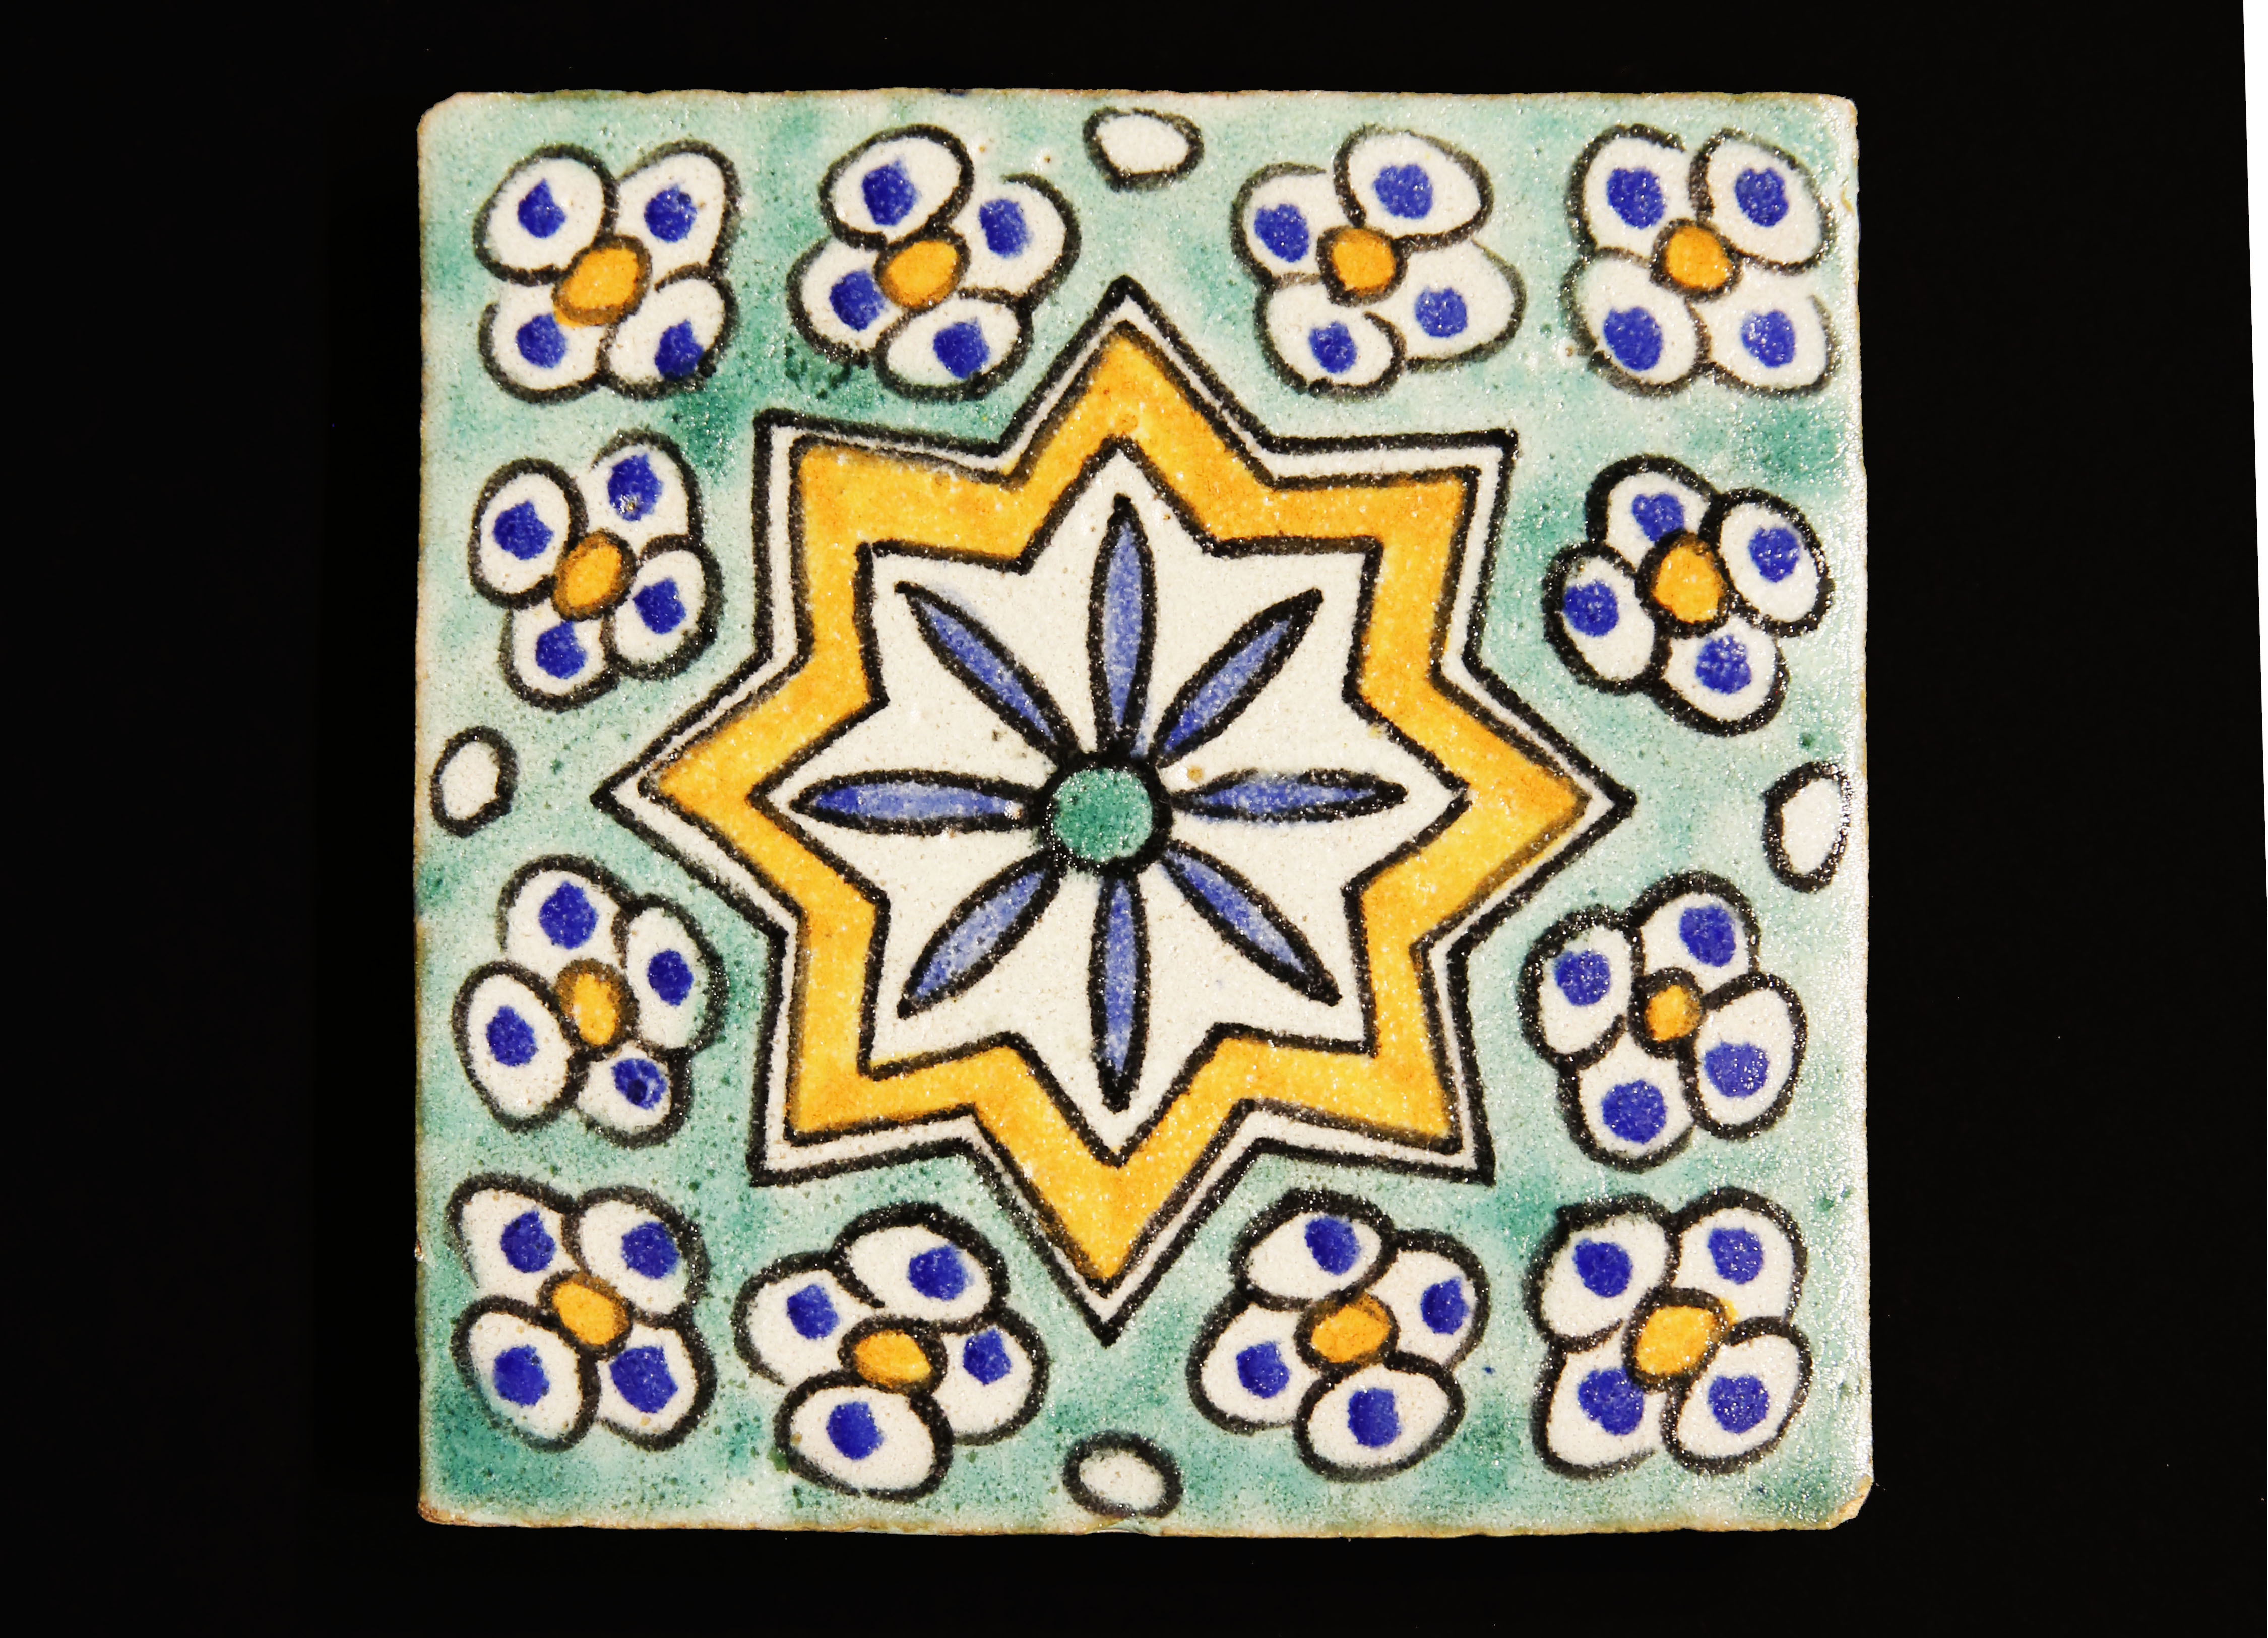 sell hand-painted tiles, hand-painted ceramics, tadelakt, handcrafted, customized panels